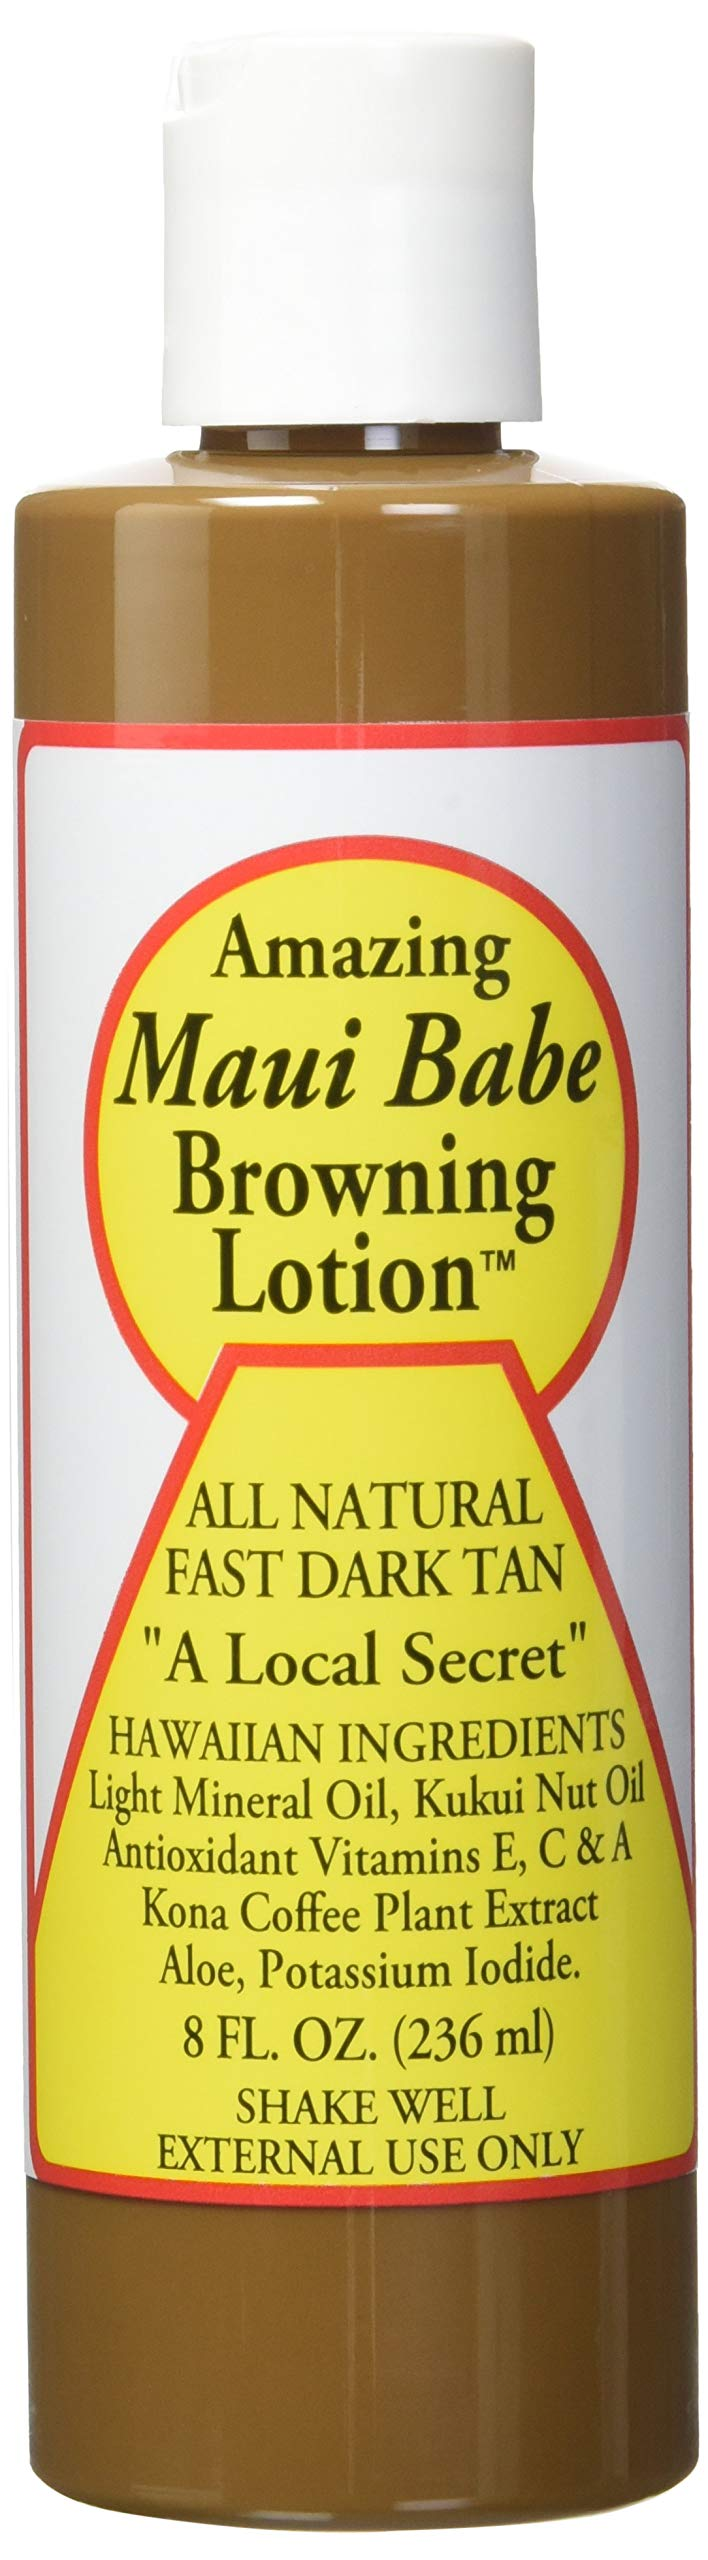 Maui Babe Browning Lotion 8 Ounces by Maui Babe